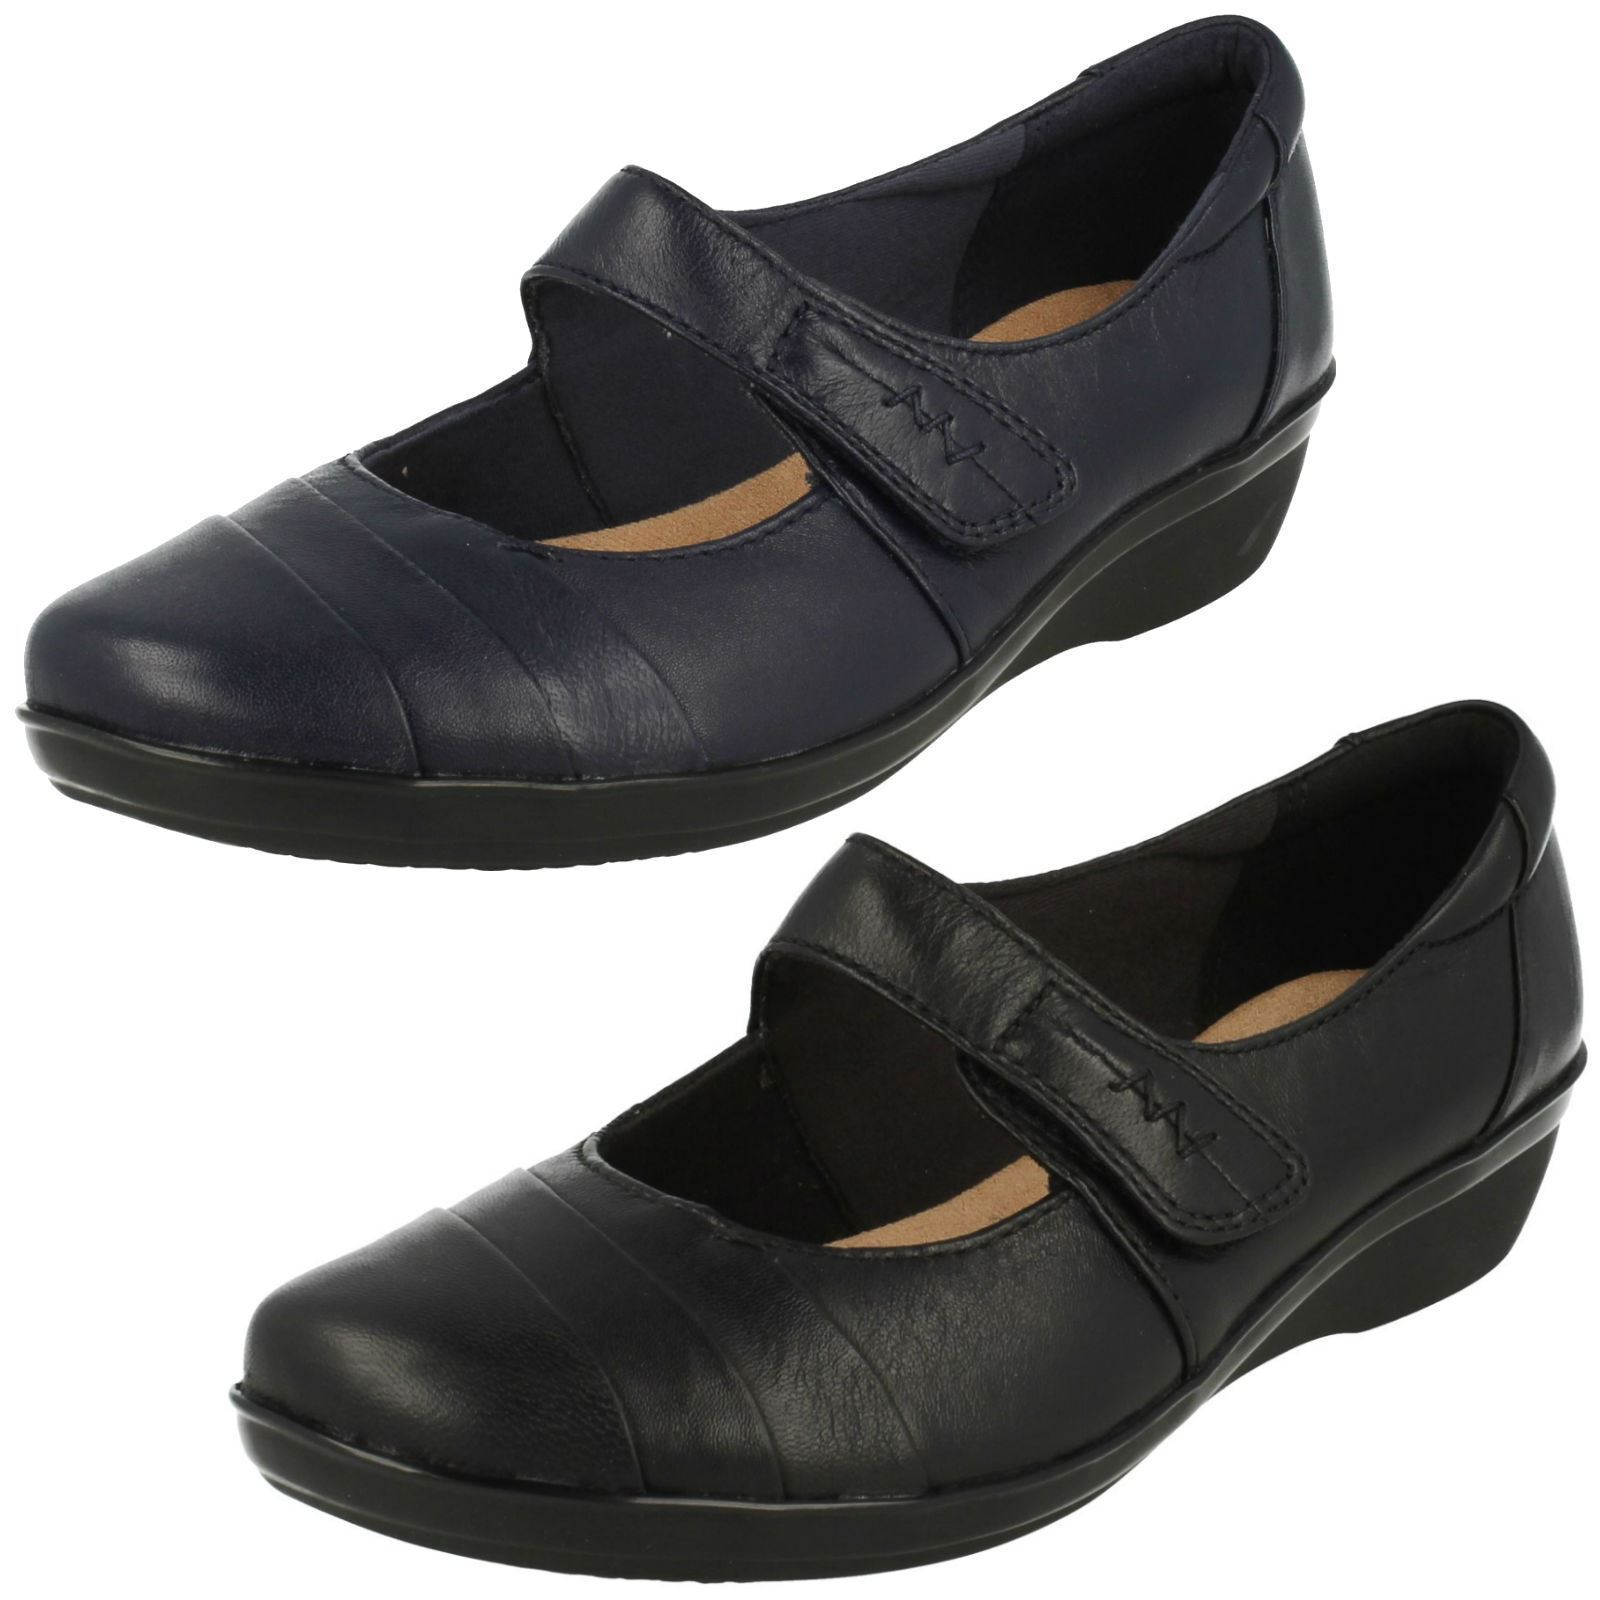 'DONNA CLARKS'S Cuscino SOFT SMART Shoes everlay KENNON